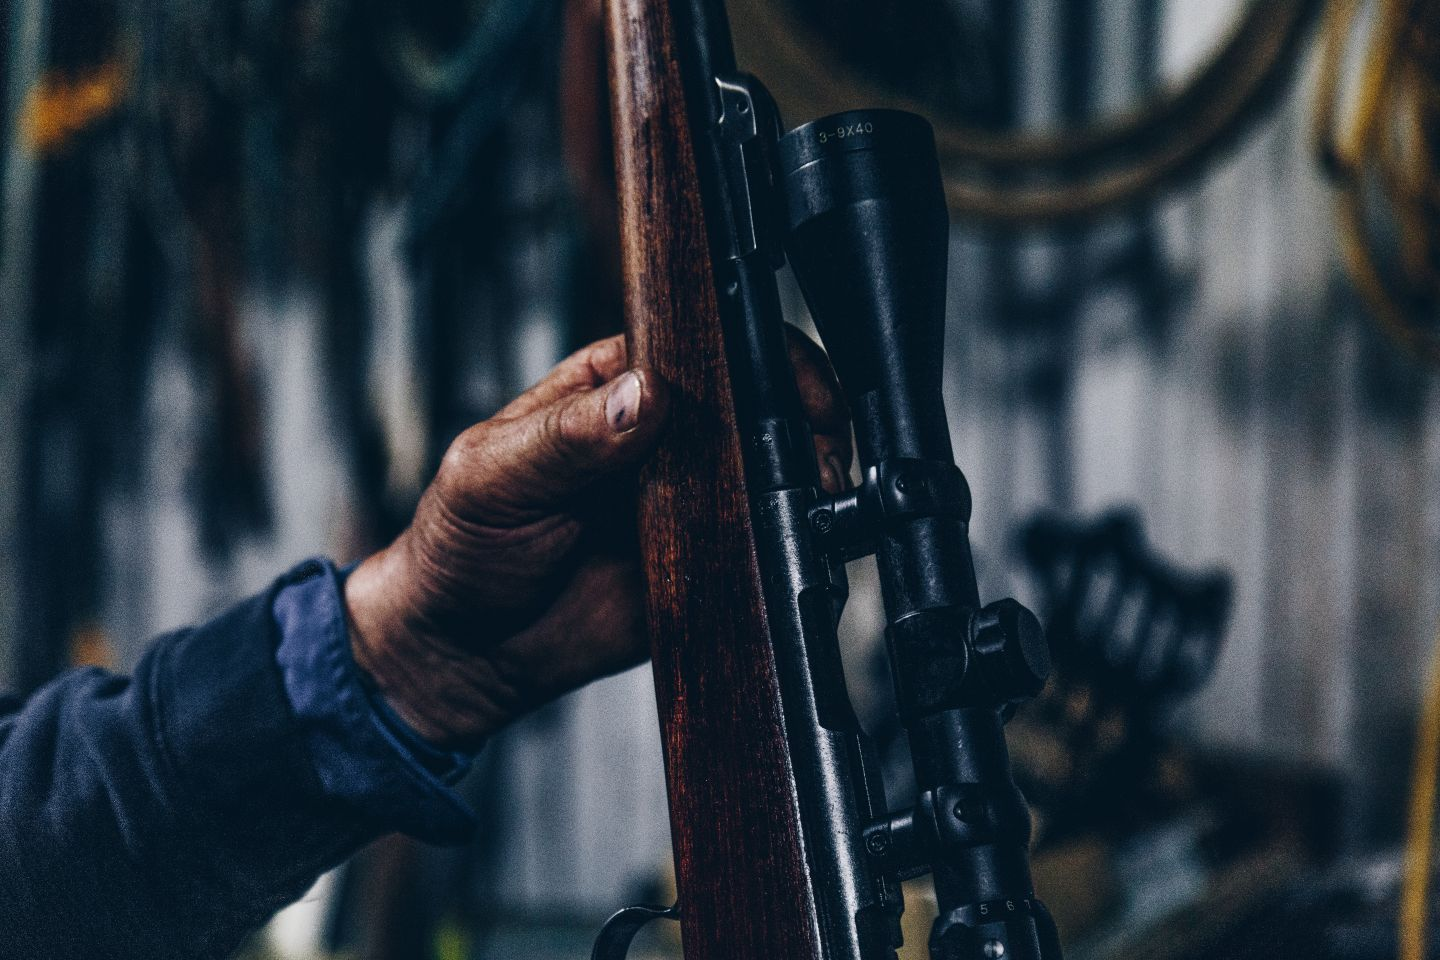 Can you name the best selling non-restricted firearms?